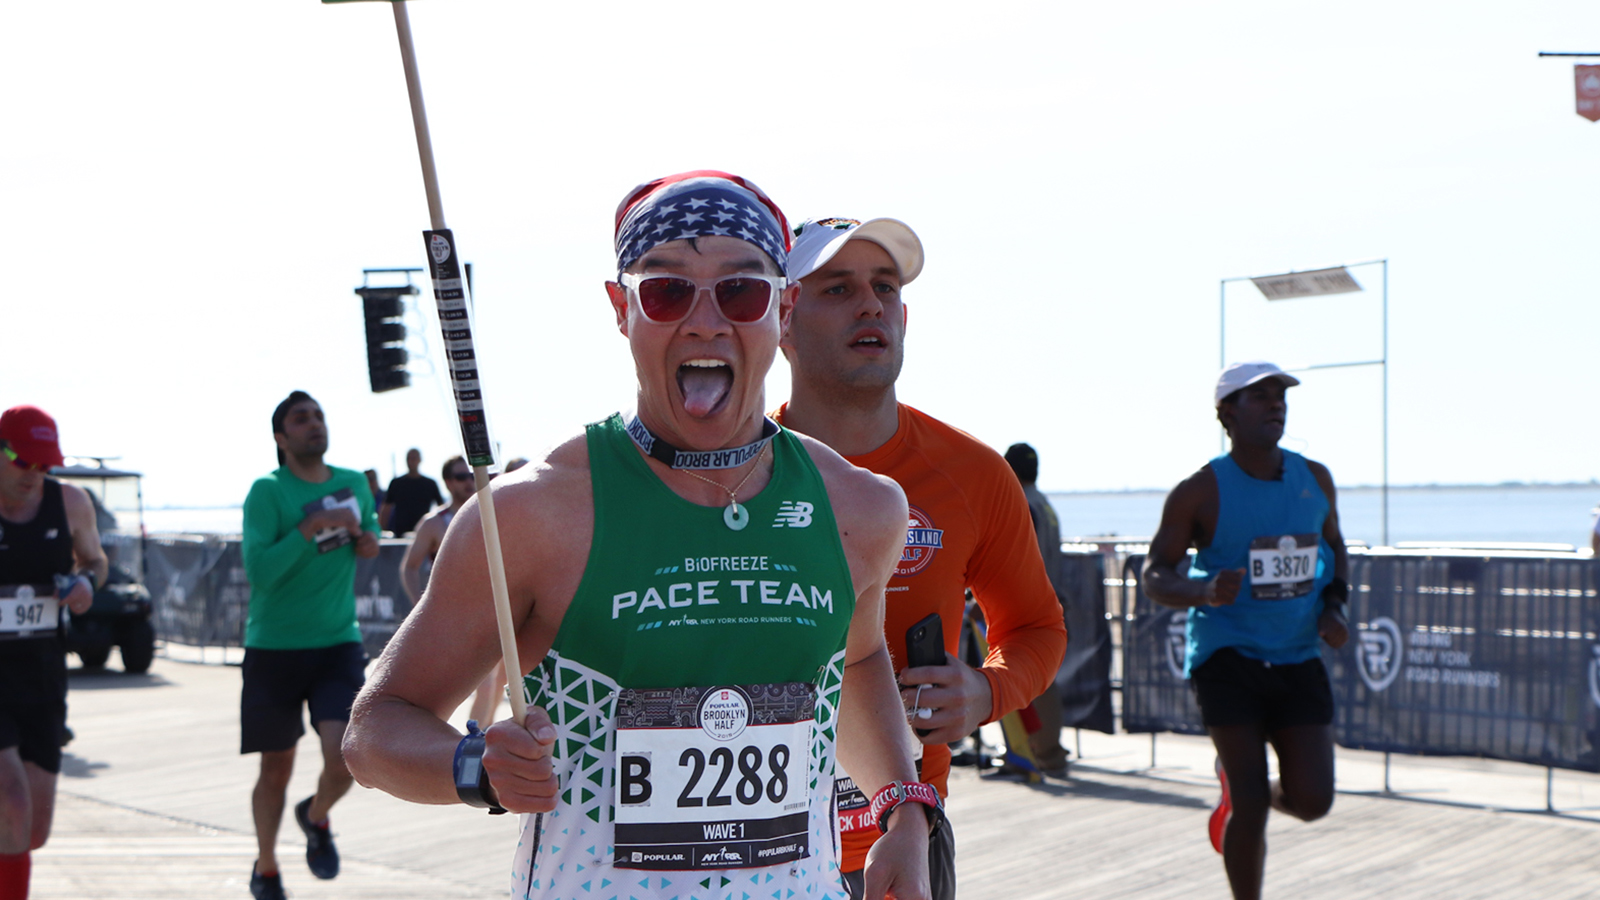 NYRR Pace Team member Brian Hsia